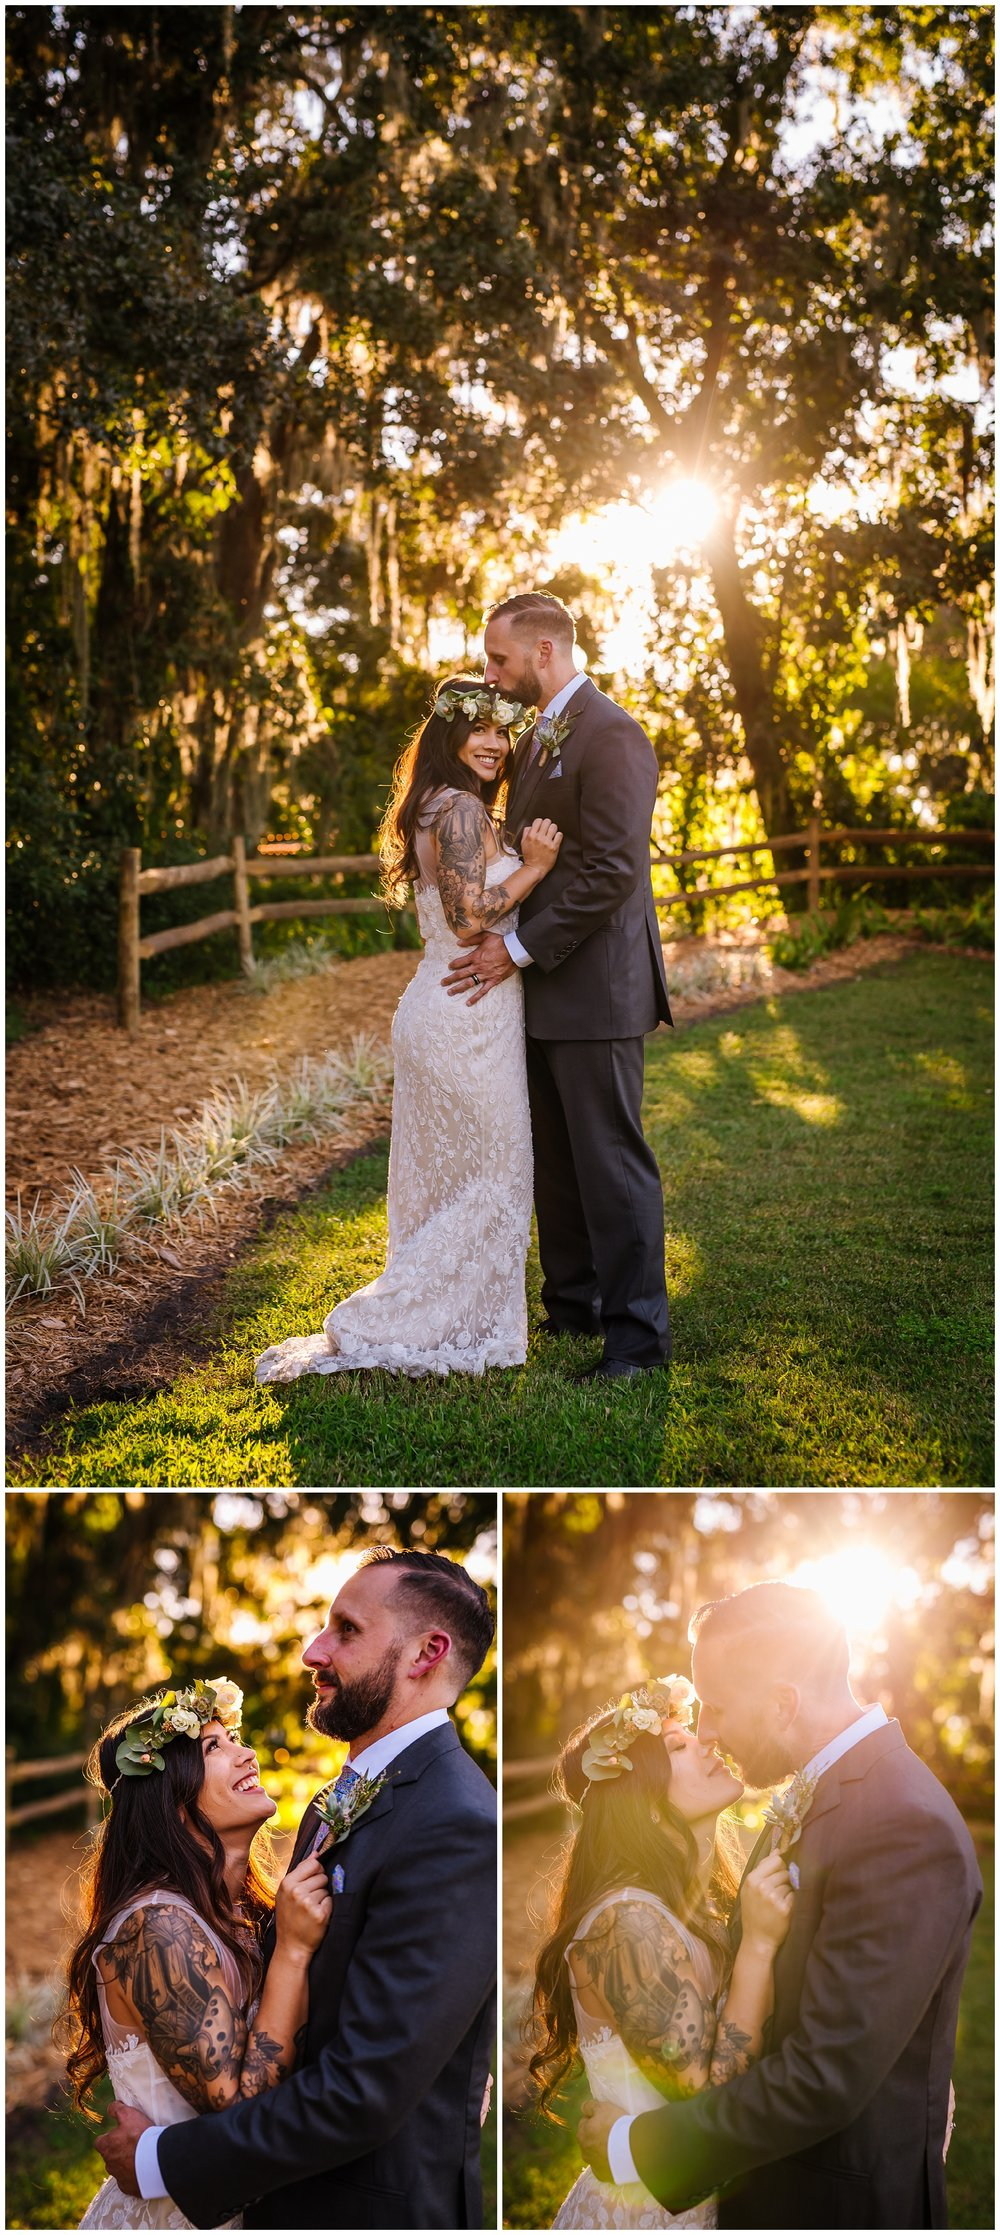 Tampa-wedding-photographer-cross-creek-ranch-bhldn-anthrolpologie-bohemian-tattoos_0123.jpg